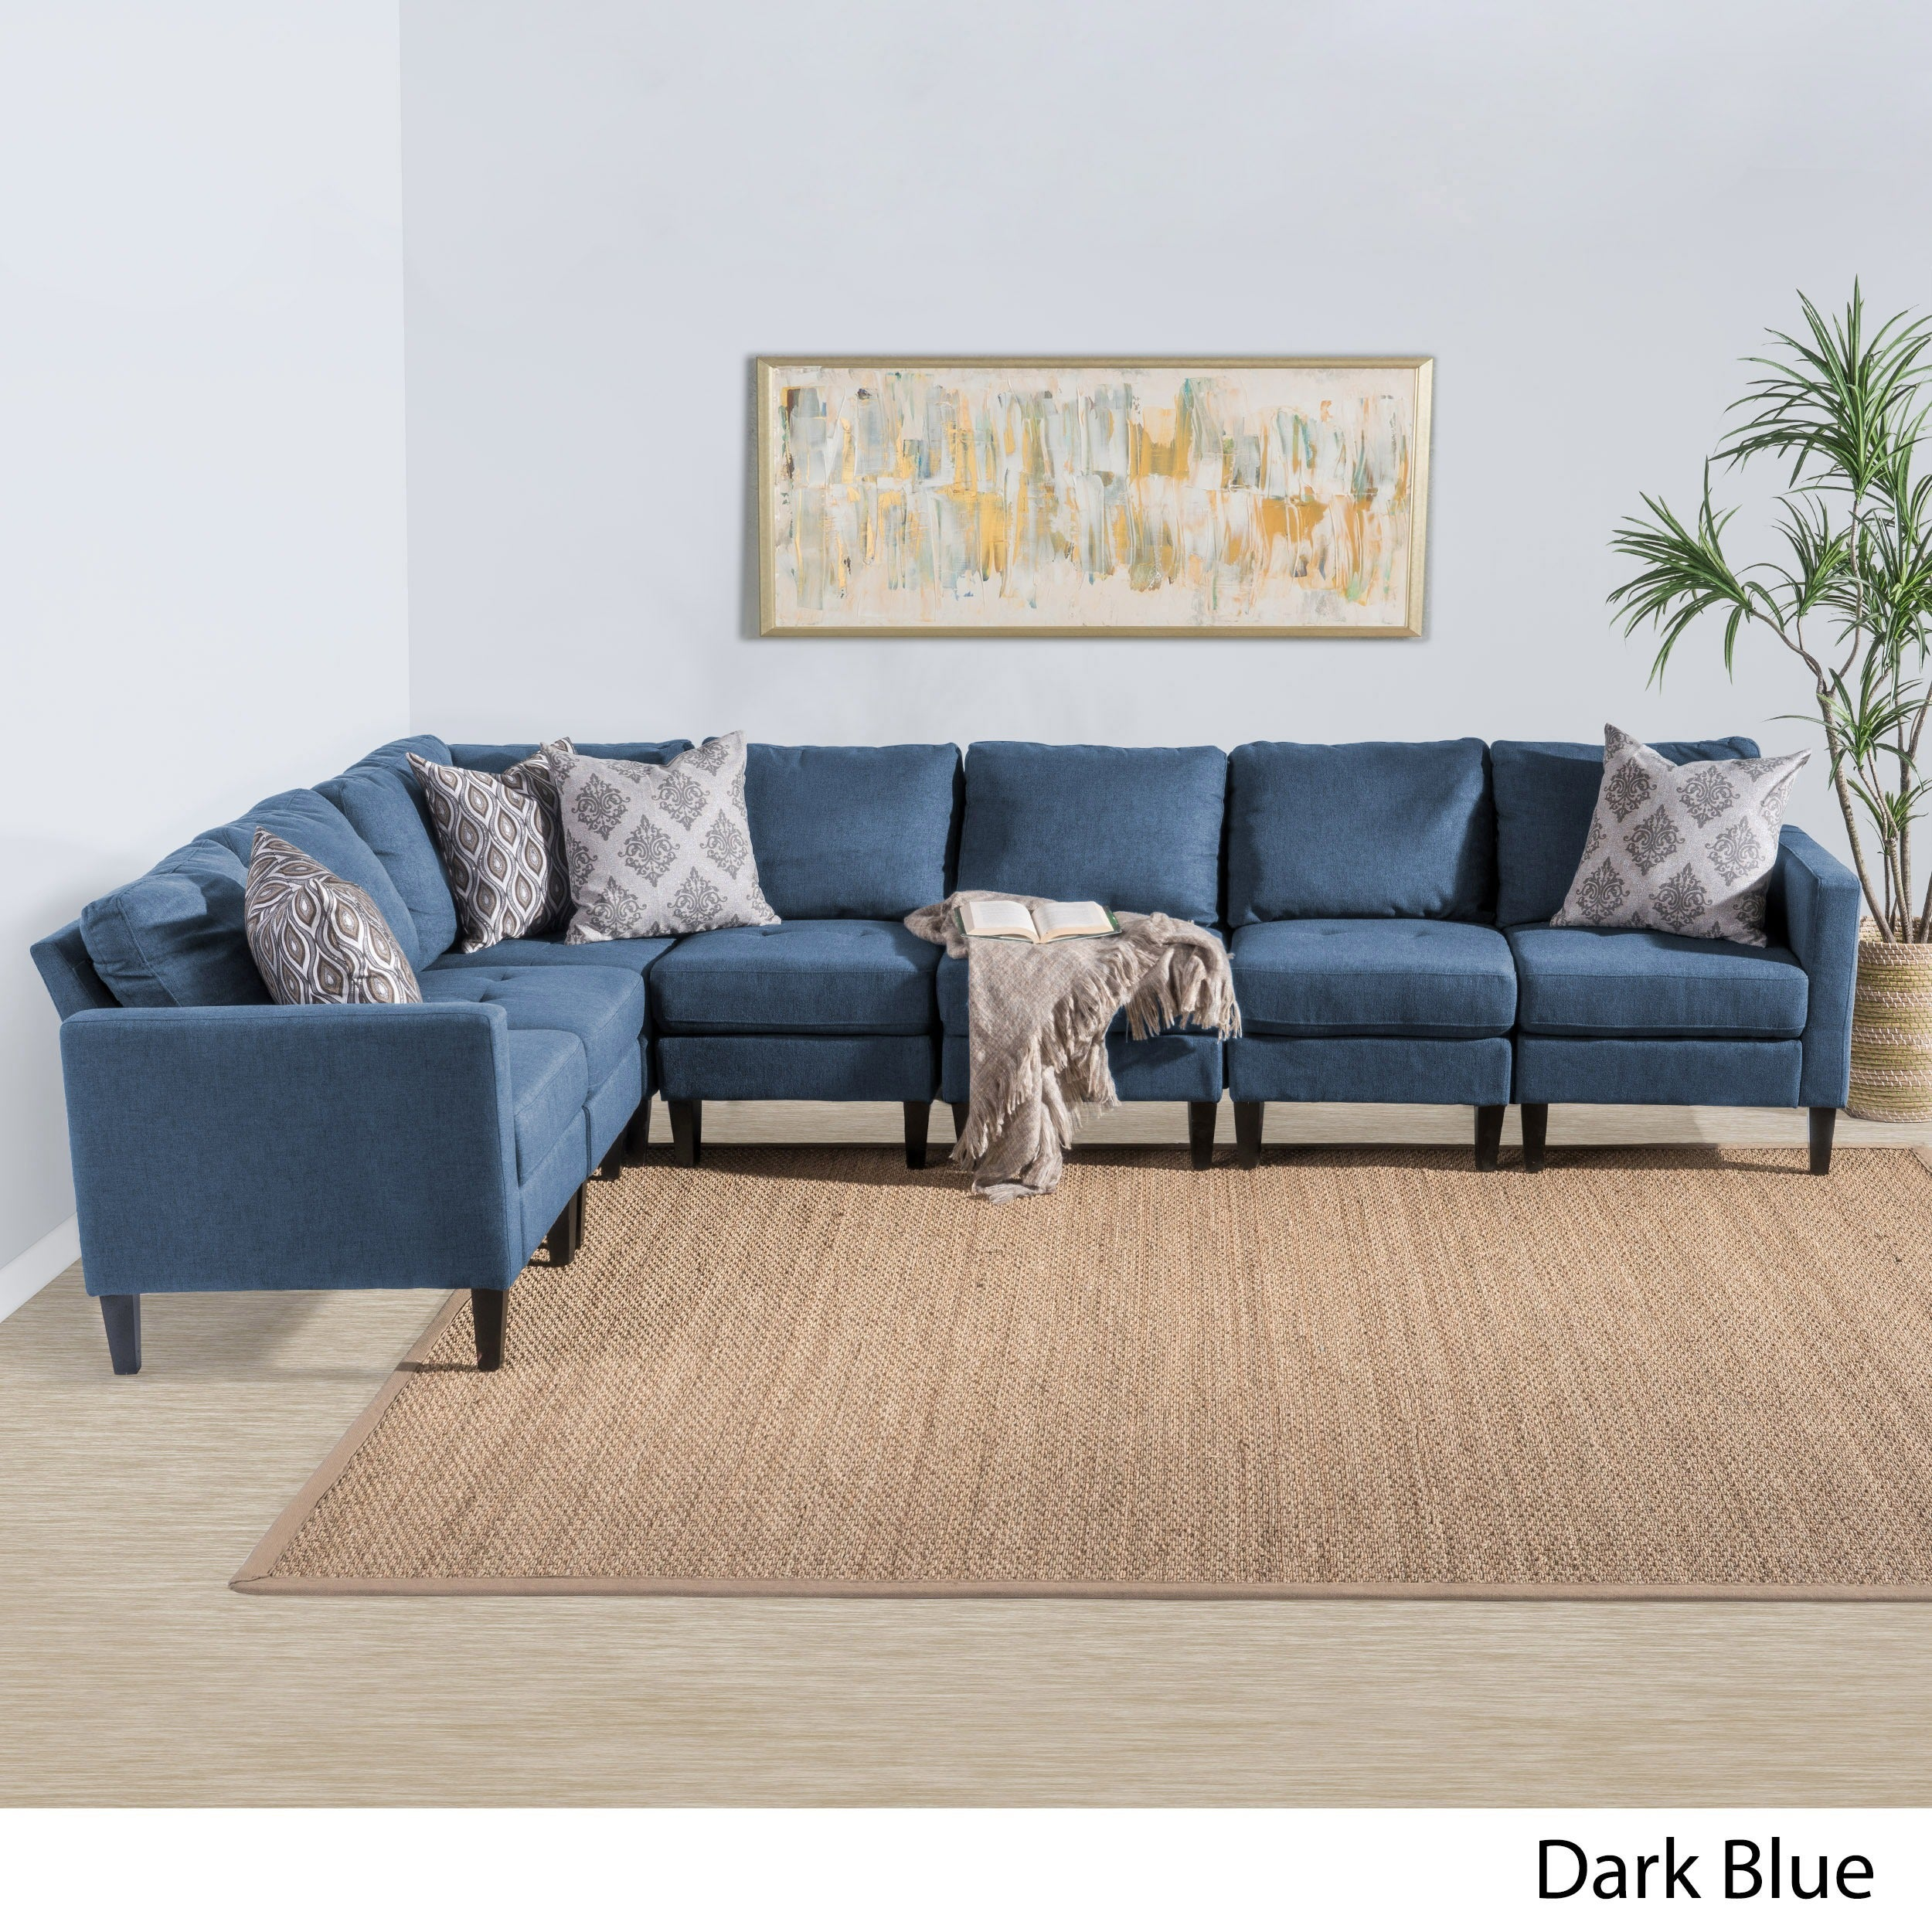 by small fabric living connected blue offer mocha idea room cozy entrancing for sofas rug beige sofa of furniture design sectional on black set curtains hook